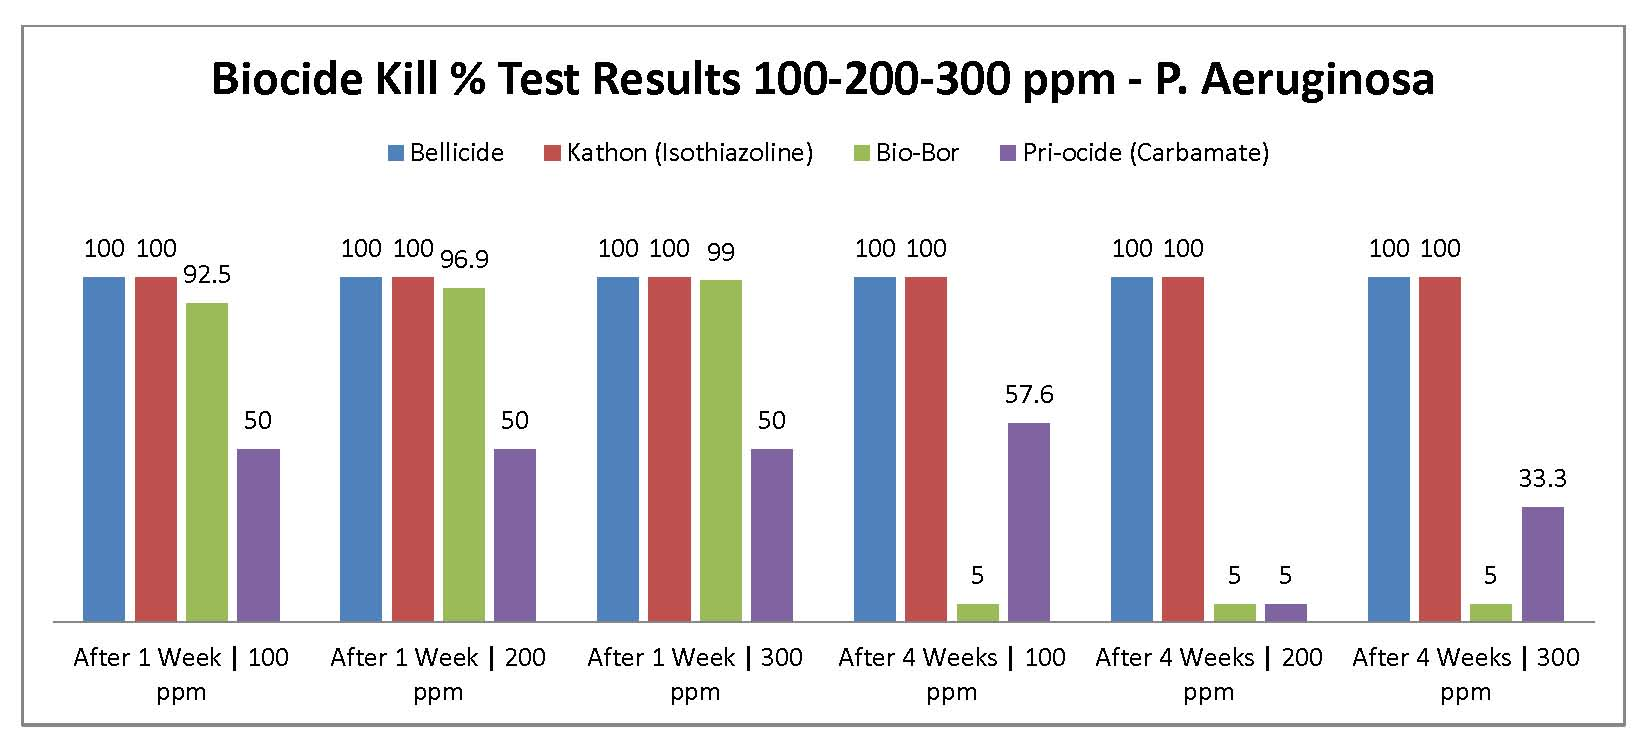 Kill_results_chart_p_aeruginosa_100-300ppm_0515